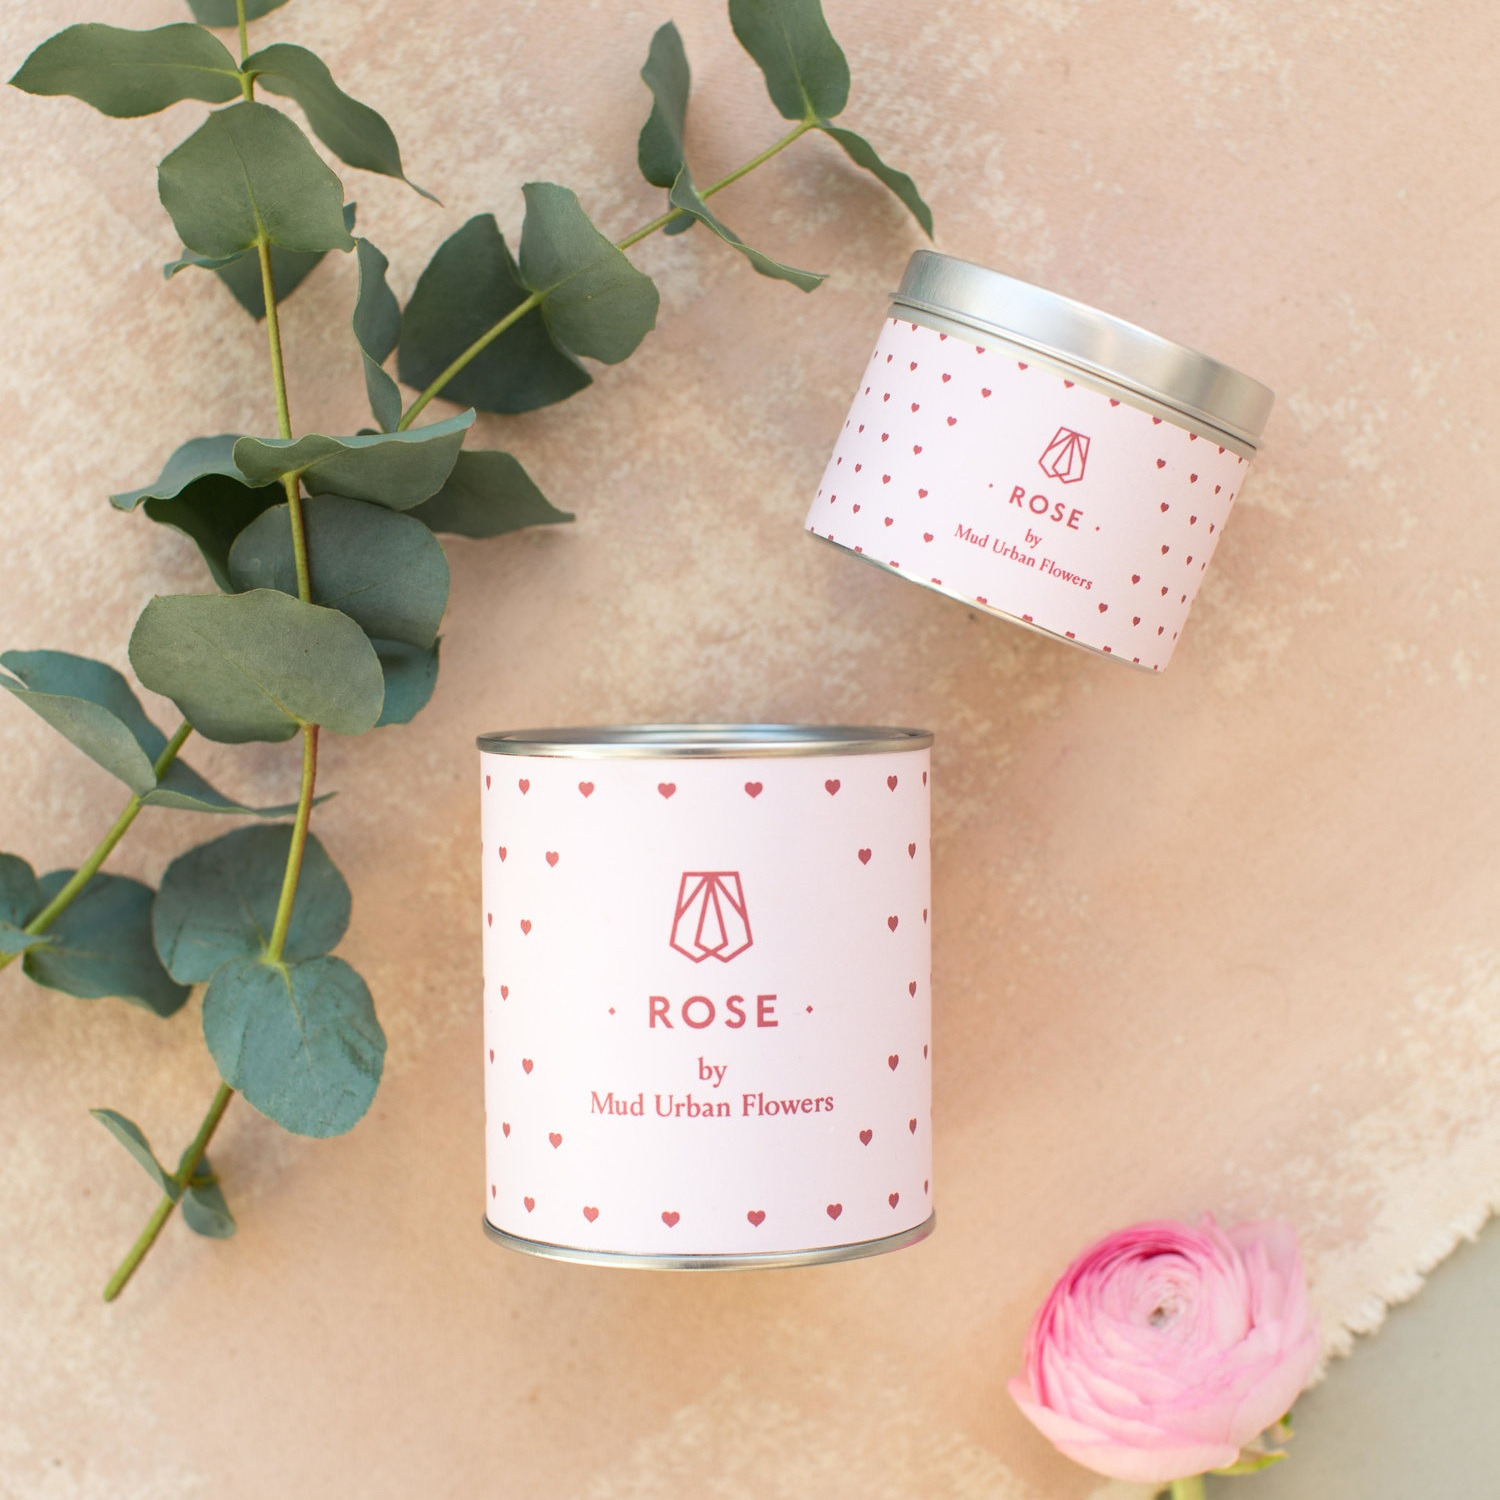 5. Mud Rose Candle - £8-£16 - Finding the right scent can be a challenge… This rose scented candle with soy wax, cotton wicks and essential fragrance is the one for your mum on her special day because she's worth it! Candle size little (£8) or luxe(16) is the perfect addition to a beautiful bouquet.SHOP CANDLES GLASGOW SHOP CANDLES EDINBURGH